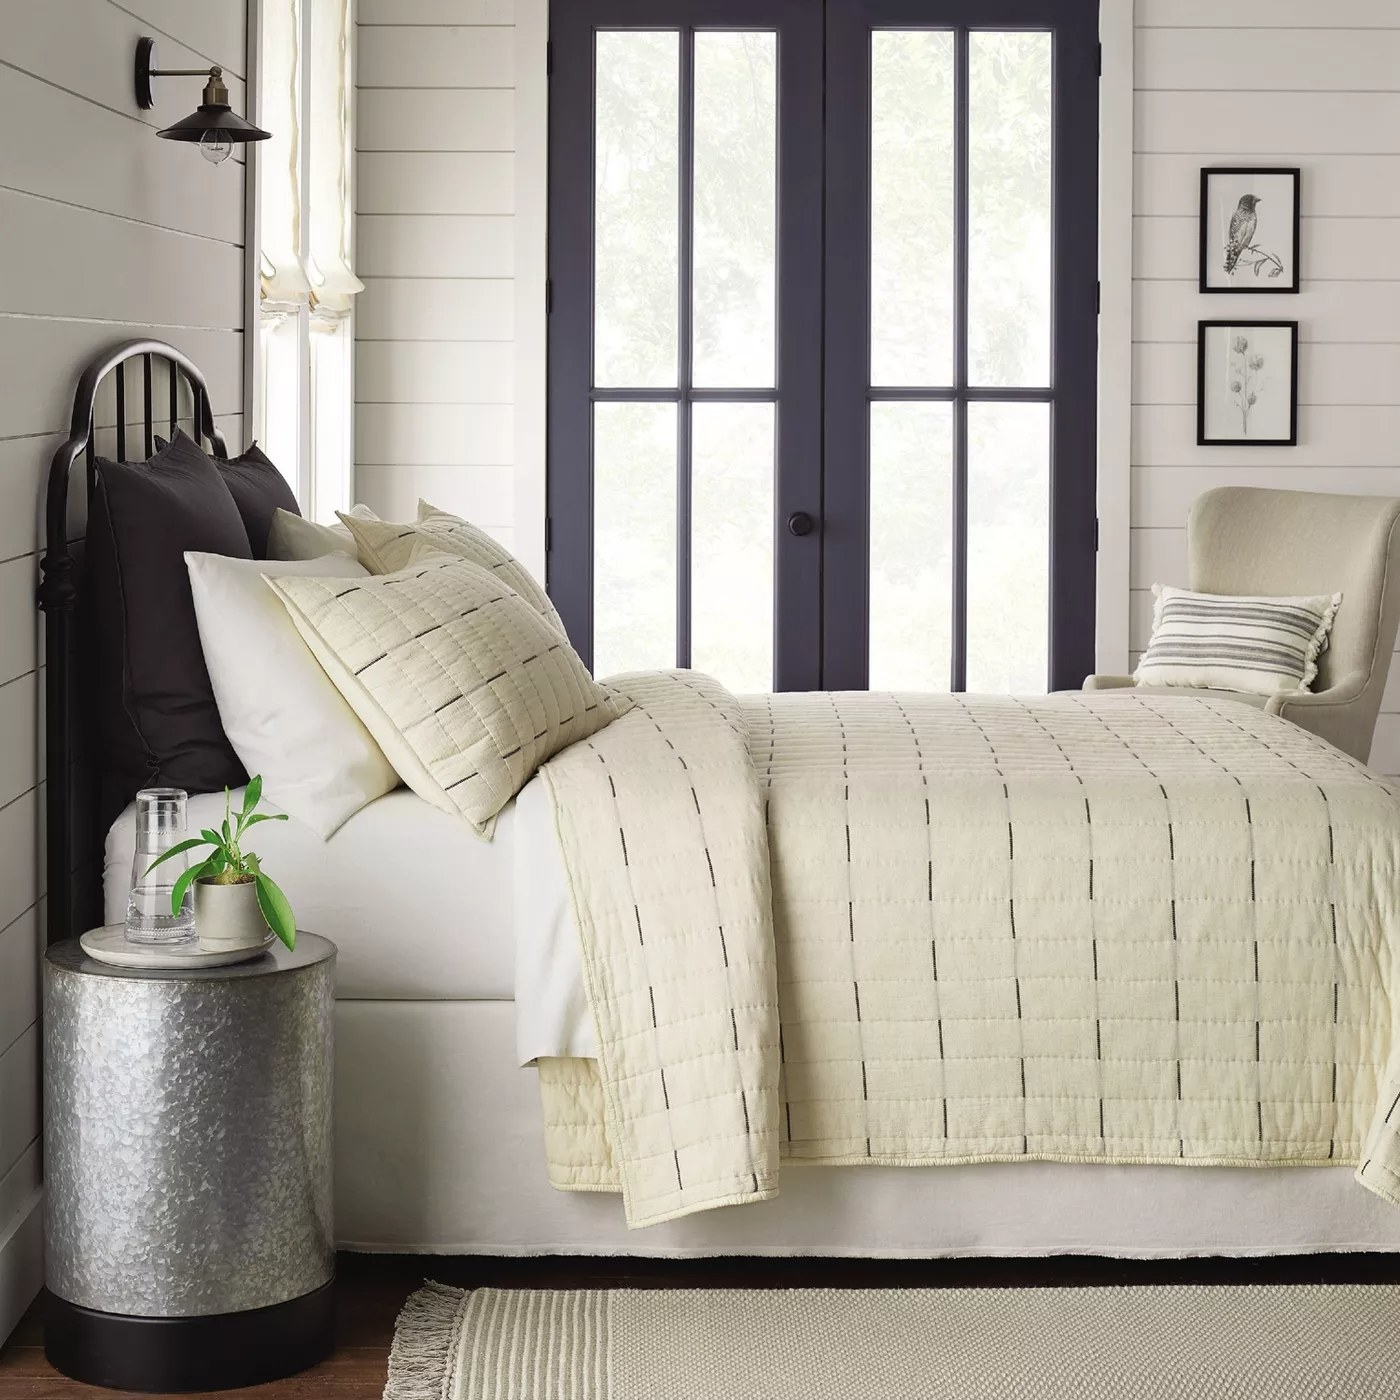 The beige quilt with gray stripes